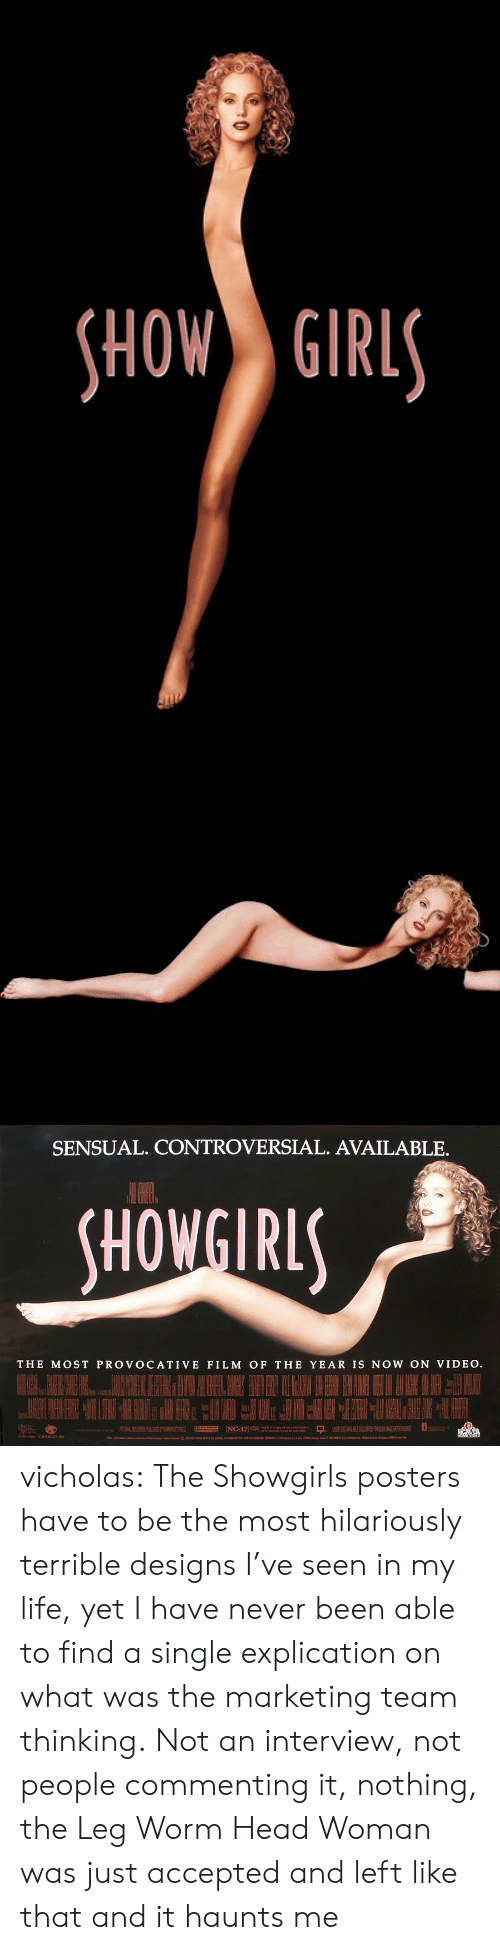 posters: HOW GIRL   SENSUAL. CONTROVERSIAL. AVAILABLE.  HOWGIRL  THE MOST PROVOCATIVE FILM OF THE YEAR IS NOW ON VIDEO vicholas:  The Showgirls posters have to be the most hilariously terrible designs I've seen in my life, yet I have never been able to find a single explication on what was the marketing team thinking. Not an interview, not people commenting it, nothing, the Leg Worm Head Woman was just accepted and left like that and it haunts me